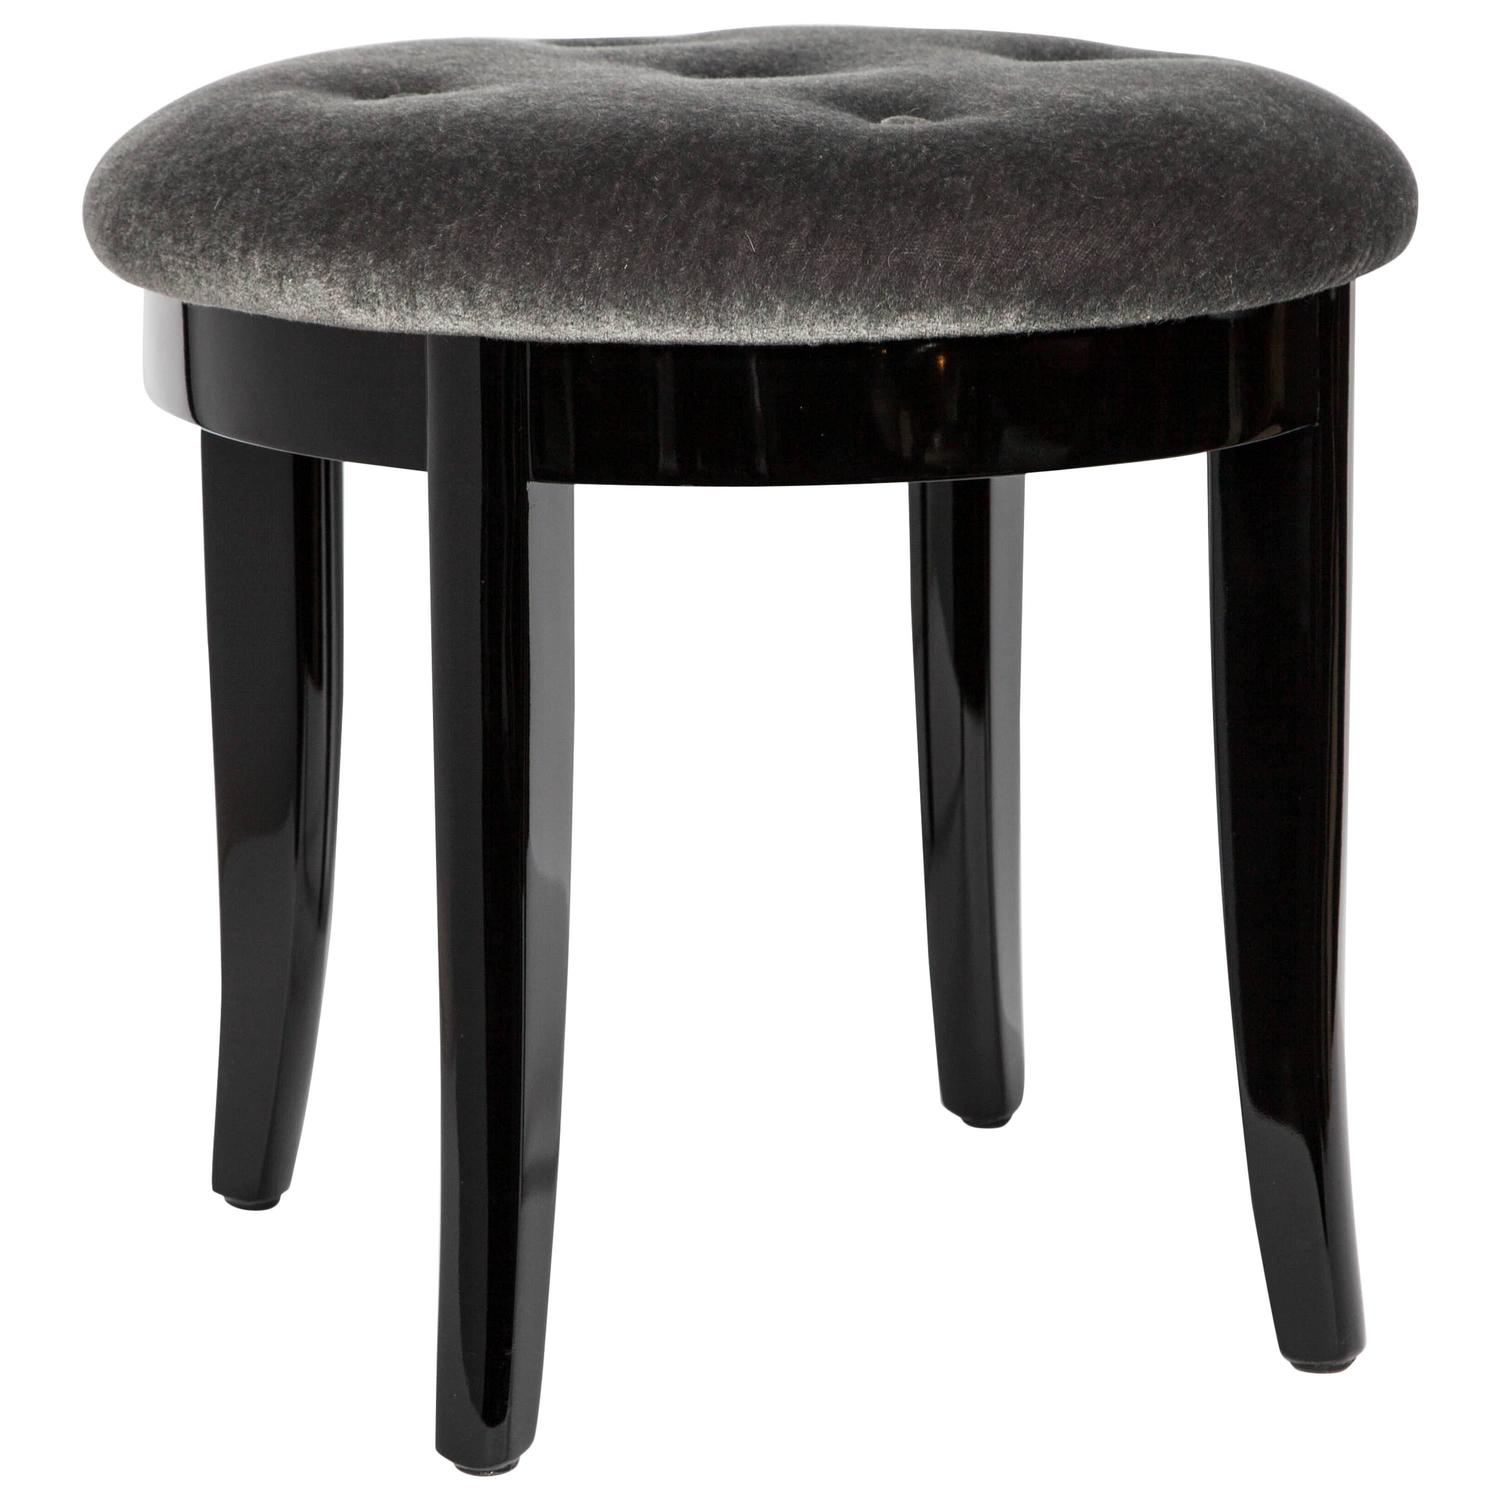 Elegant Art Deco Vanity Stool In Black Lacquer And Grey Mohair At 1stdibs